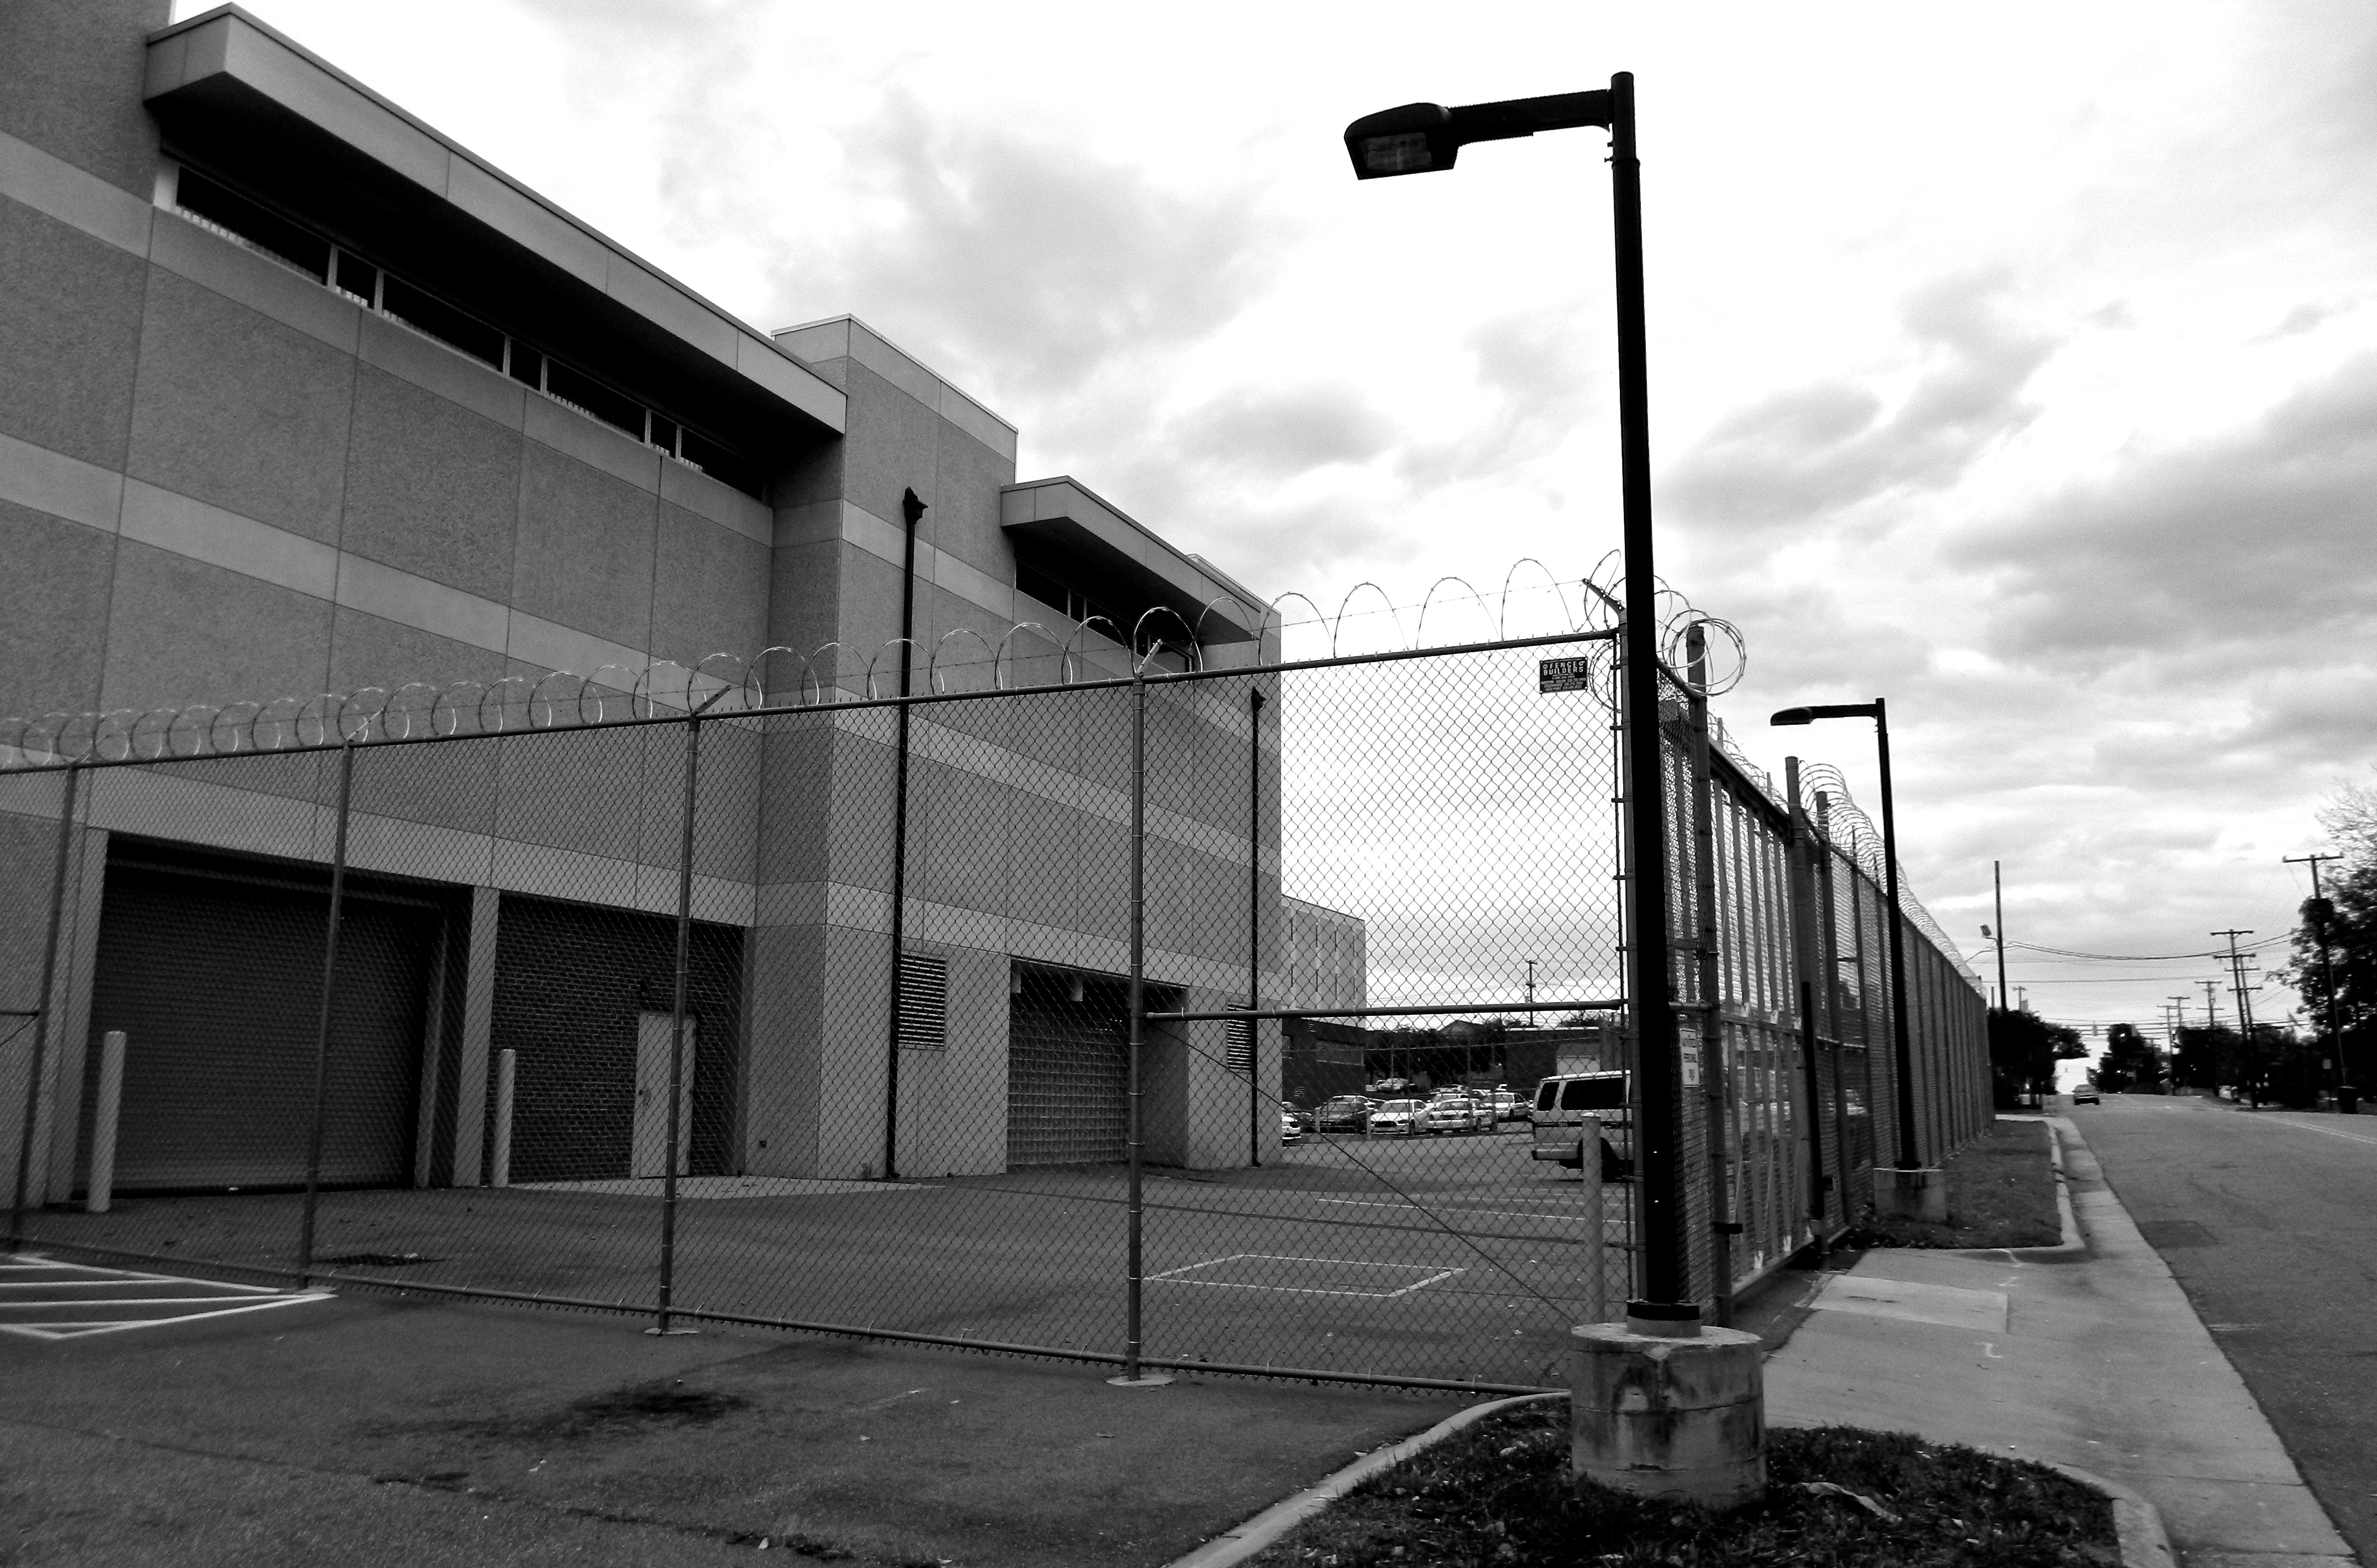 Alamance County Detention centre (Alamance County Detention Facility) (United States of America)